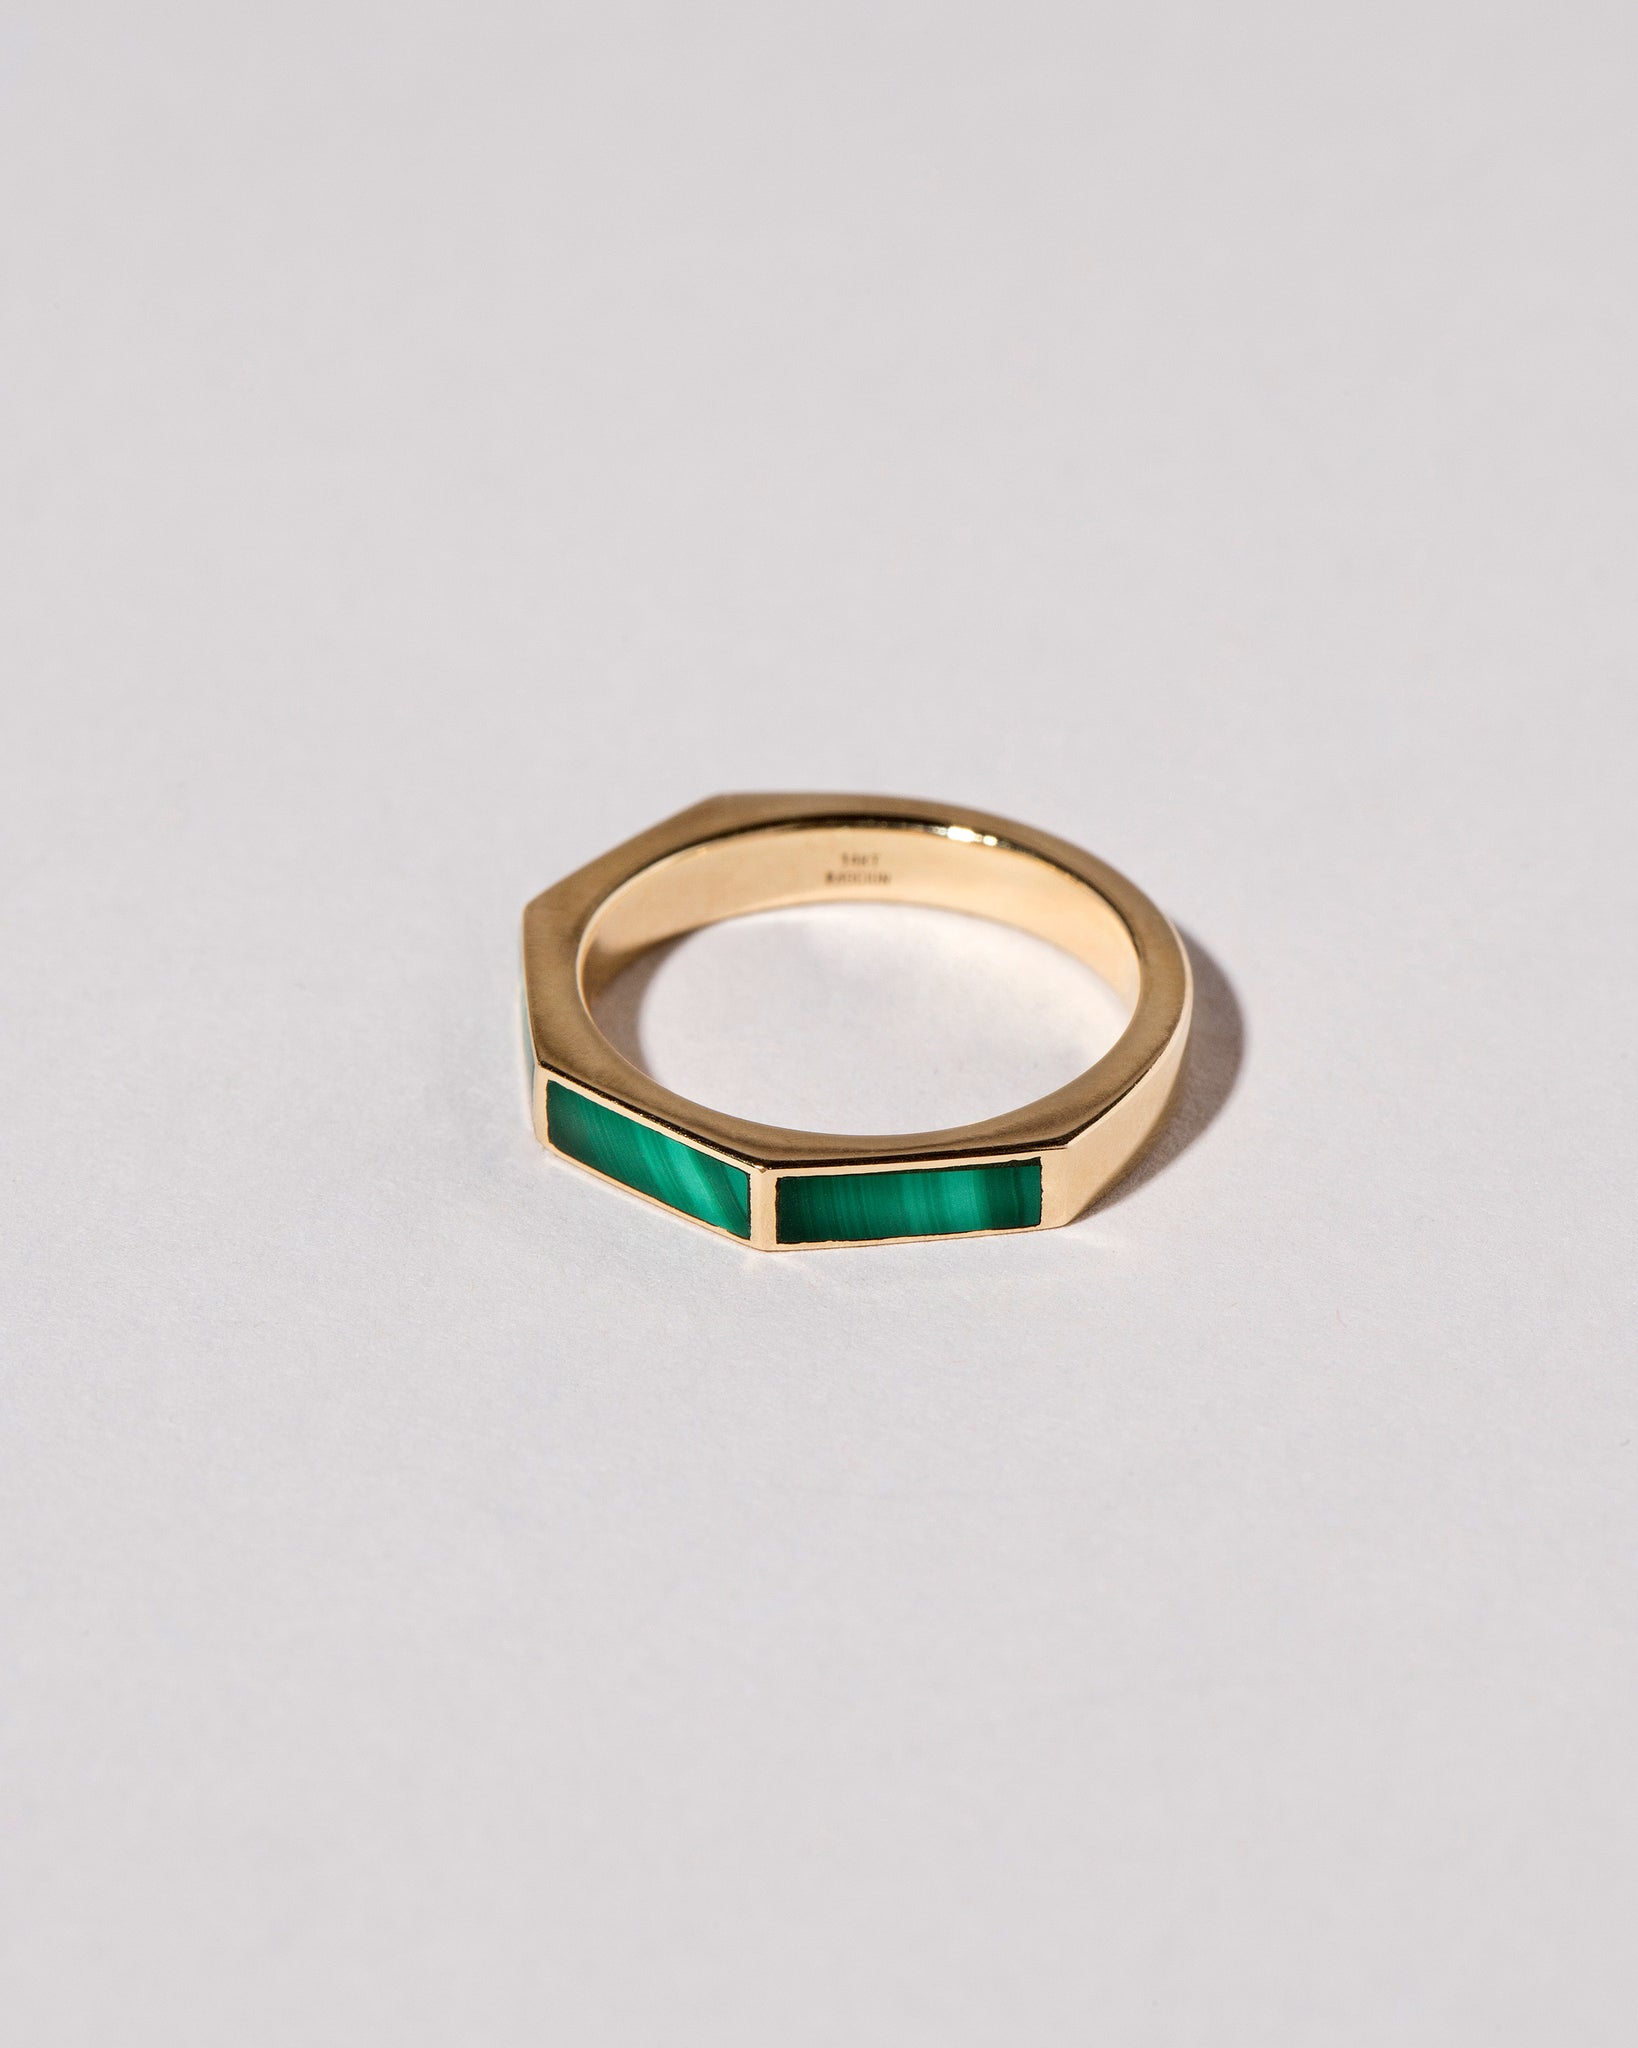 Top view of Segmented Inlay Band with Malachite